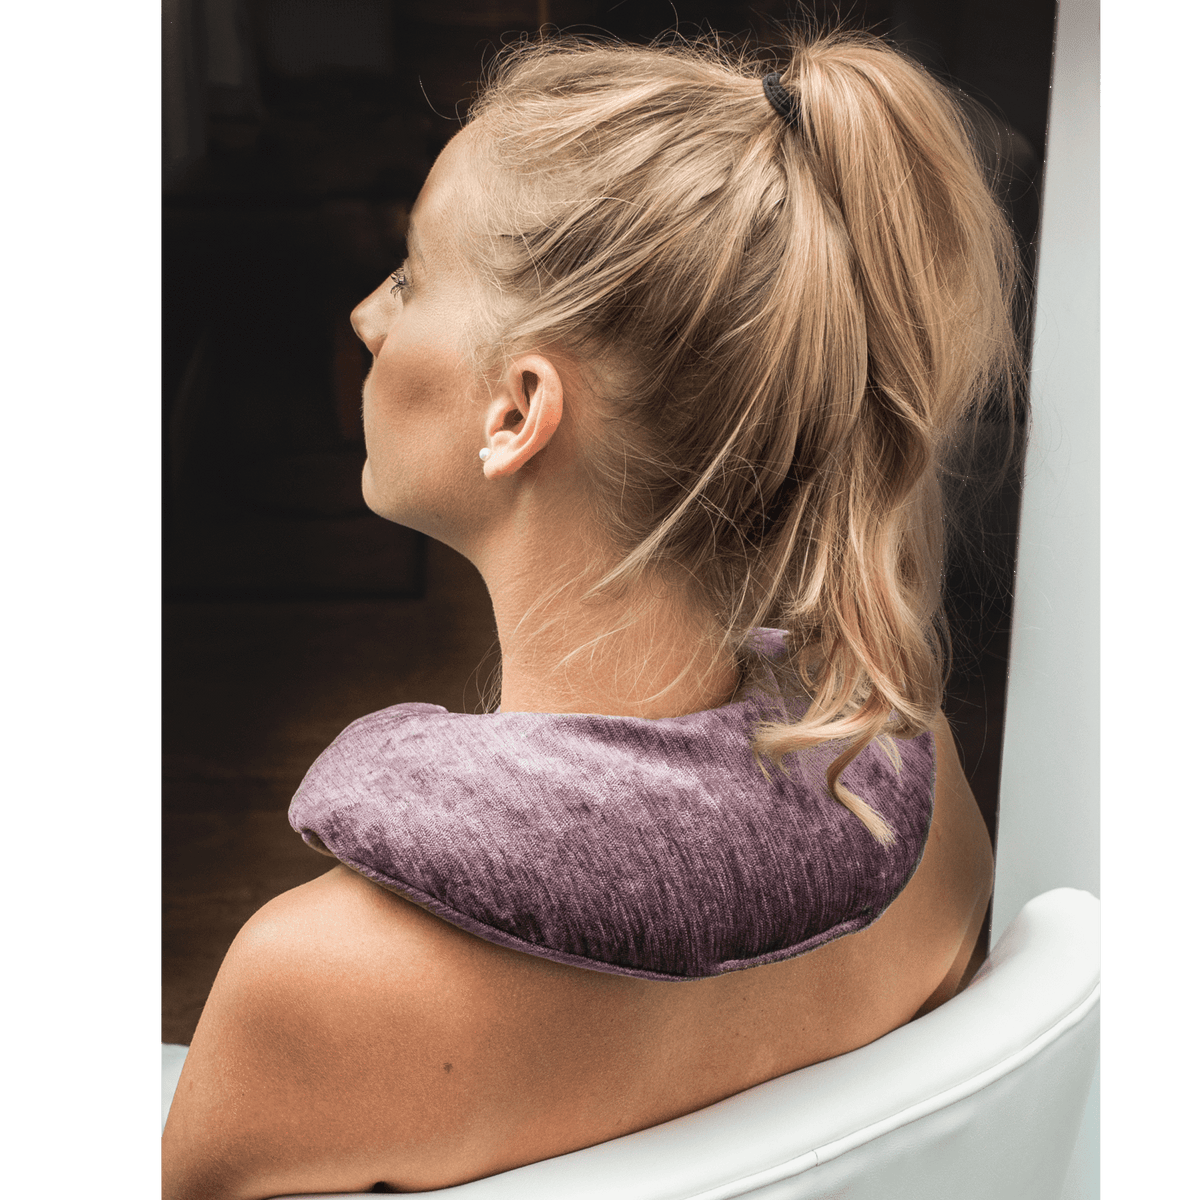 Therapy Wraps & Packs Kozi Soothing Neck Wrap, Amethyst